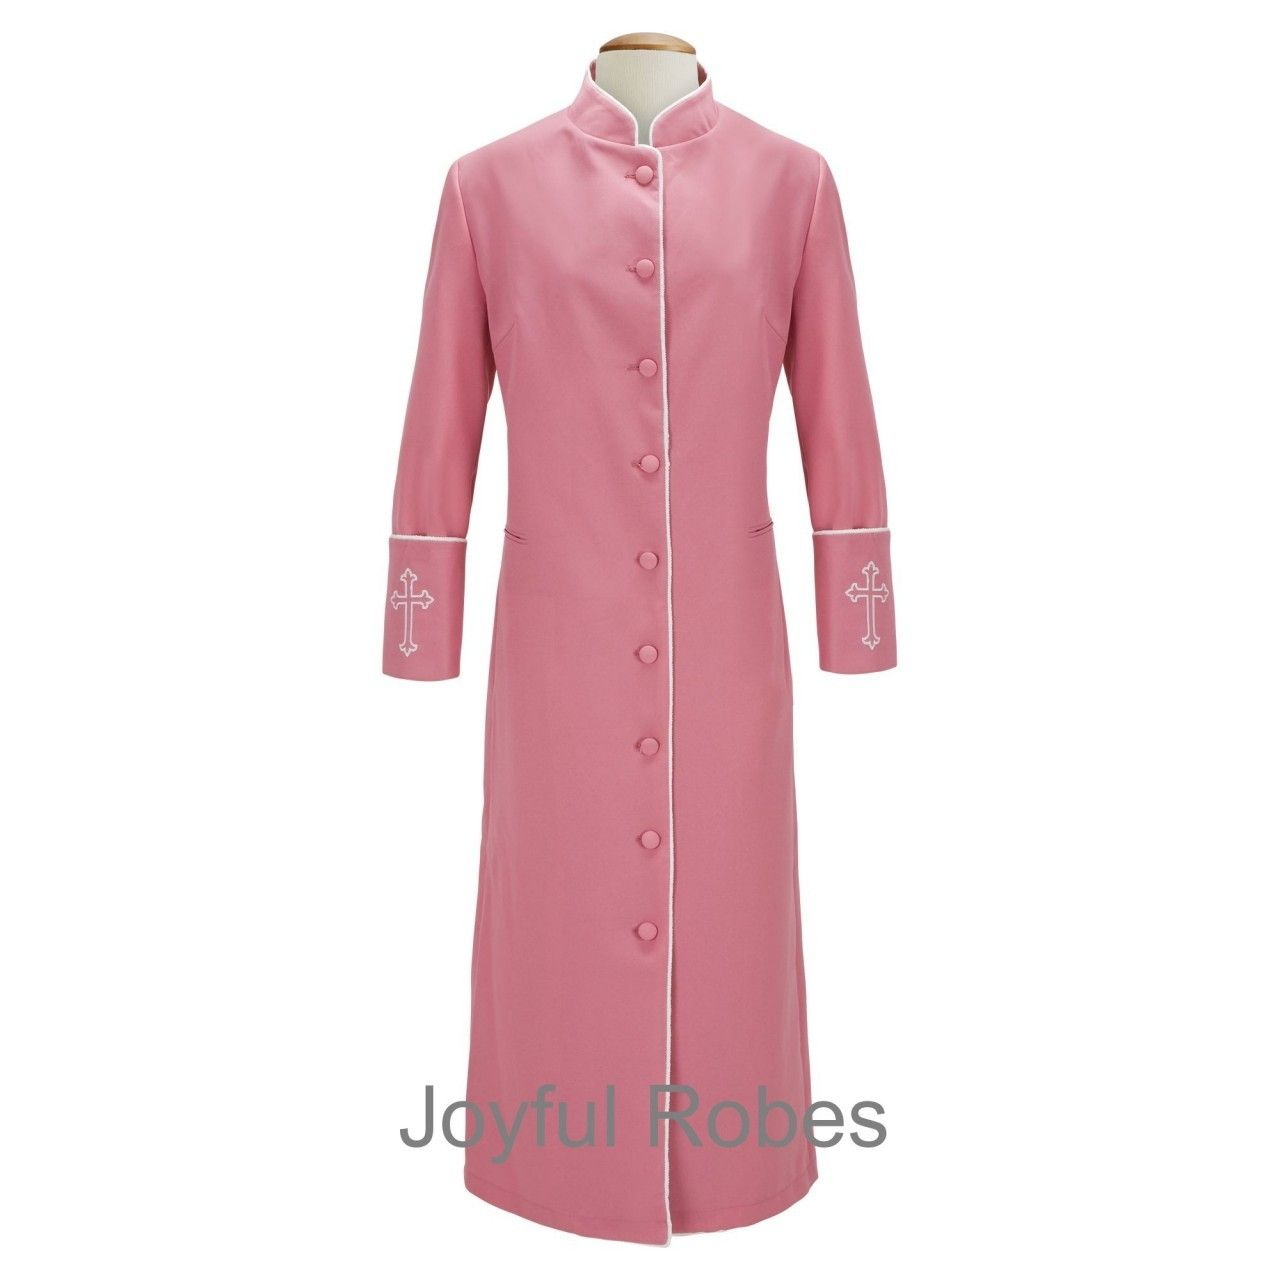 clergy robes for women womens rose pink white clergy. Black Bedroom Furniture Sets. Home Design Ideas